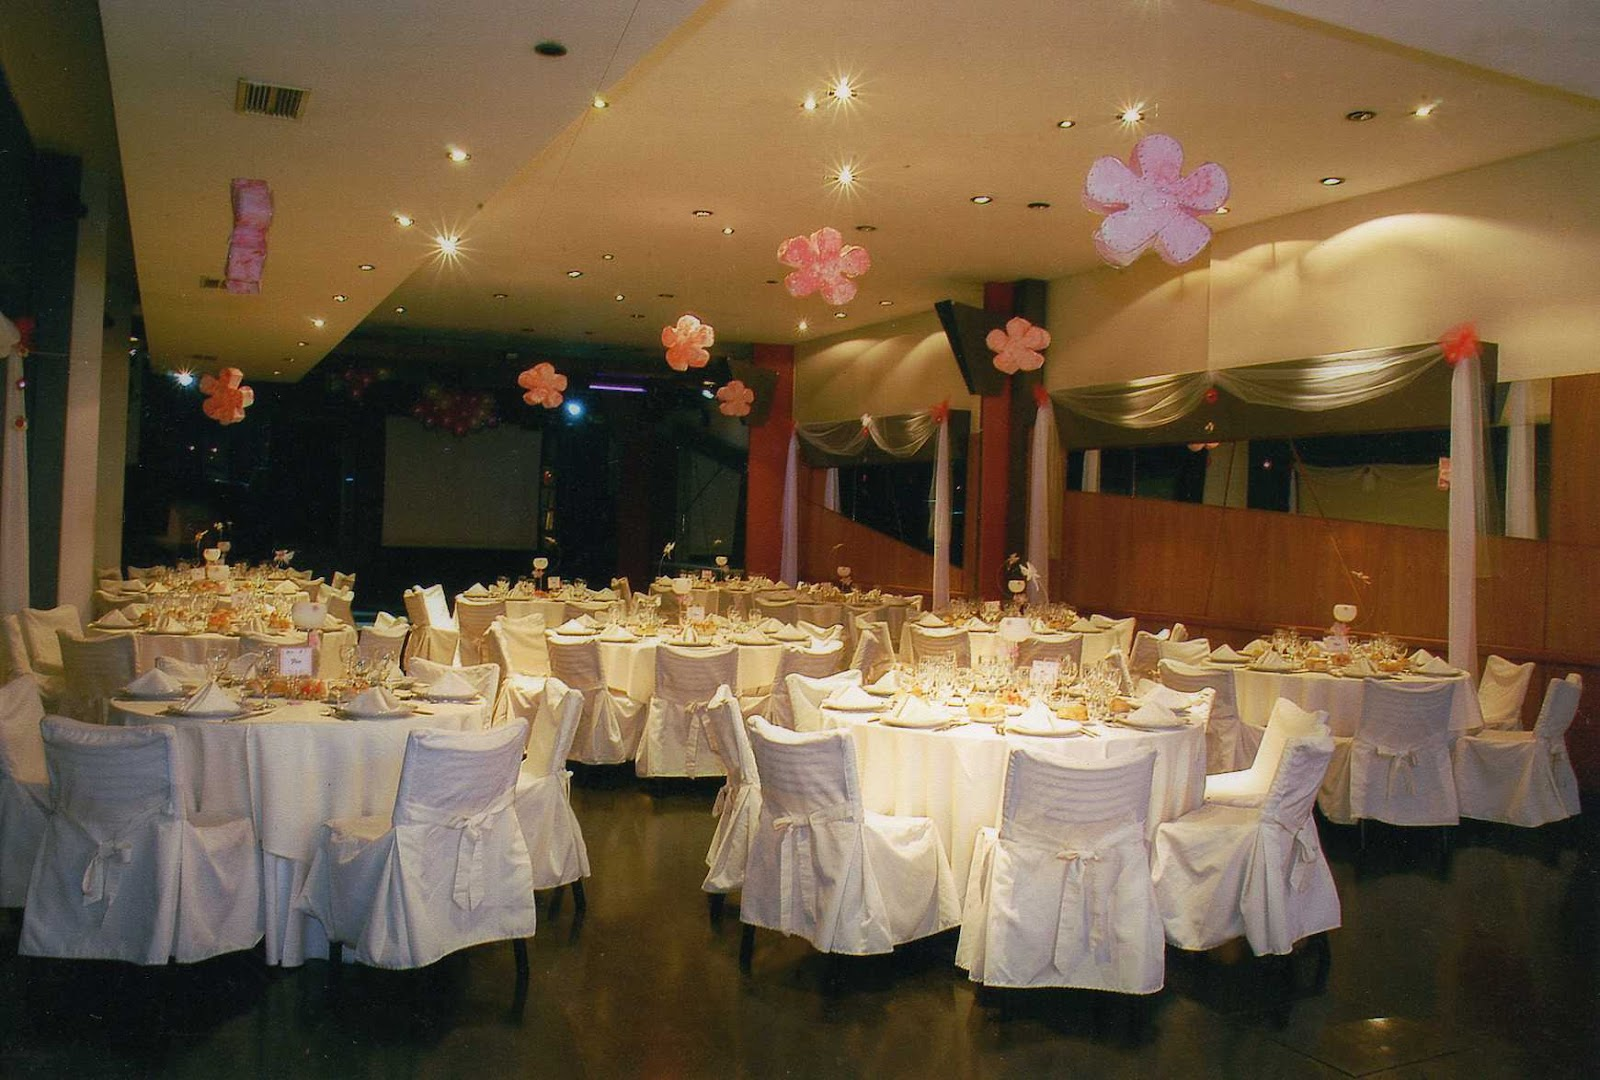 Faar Eventos Decoraciones